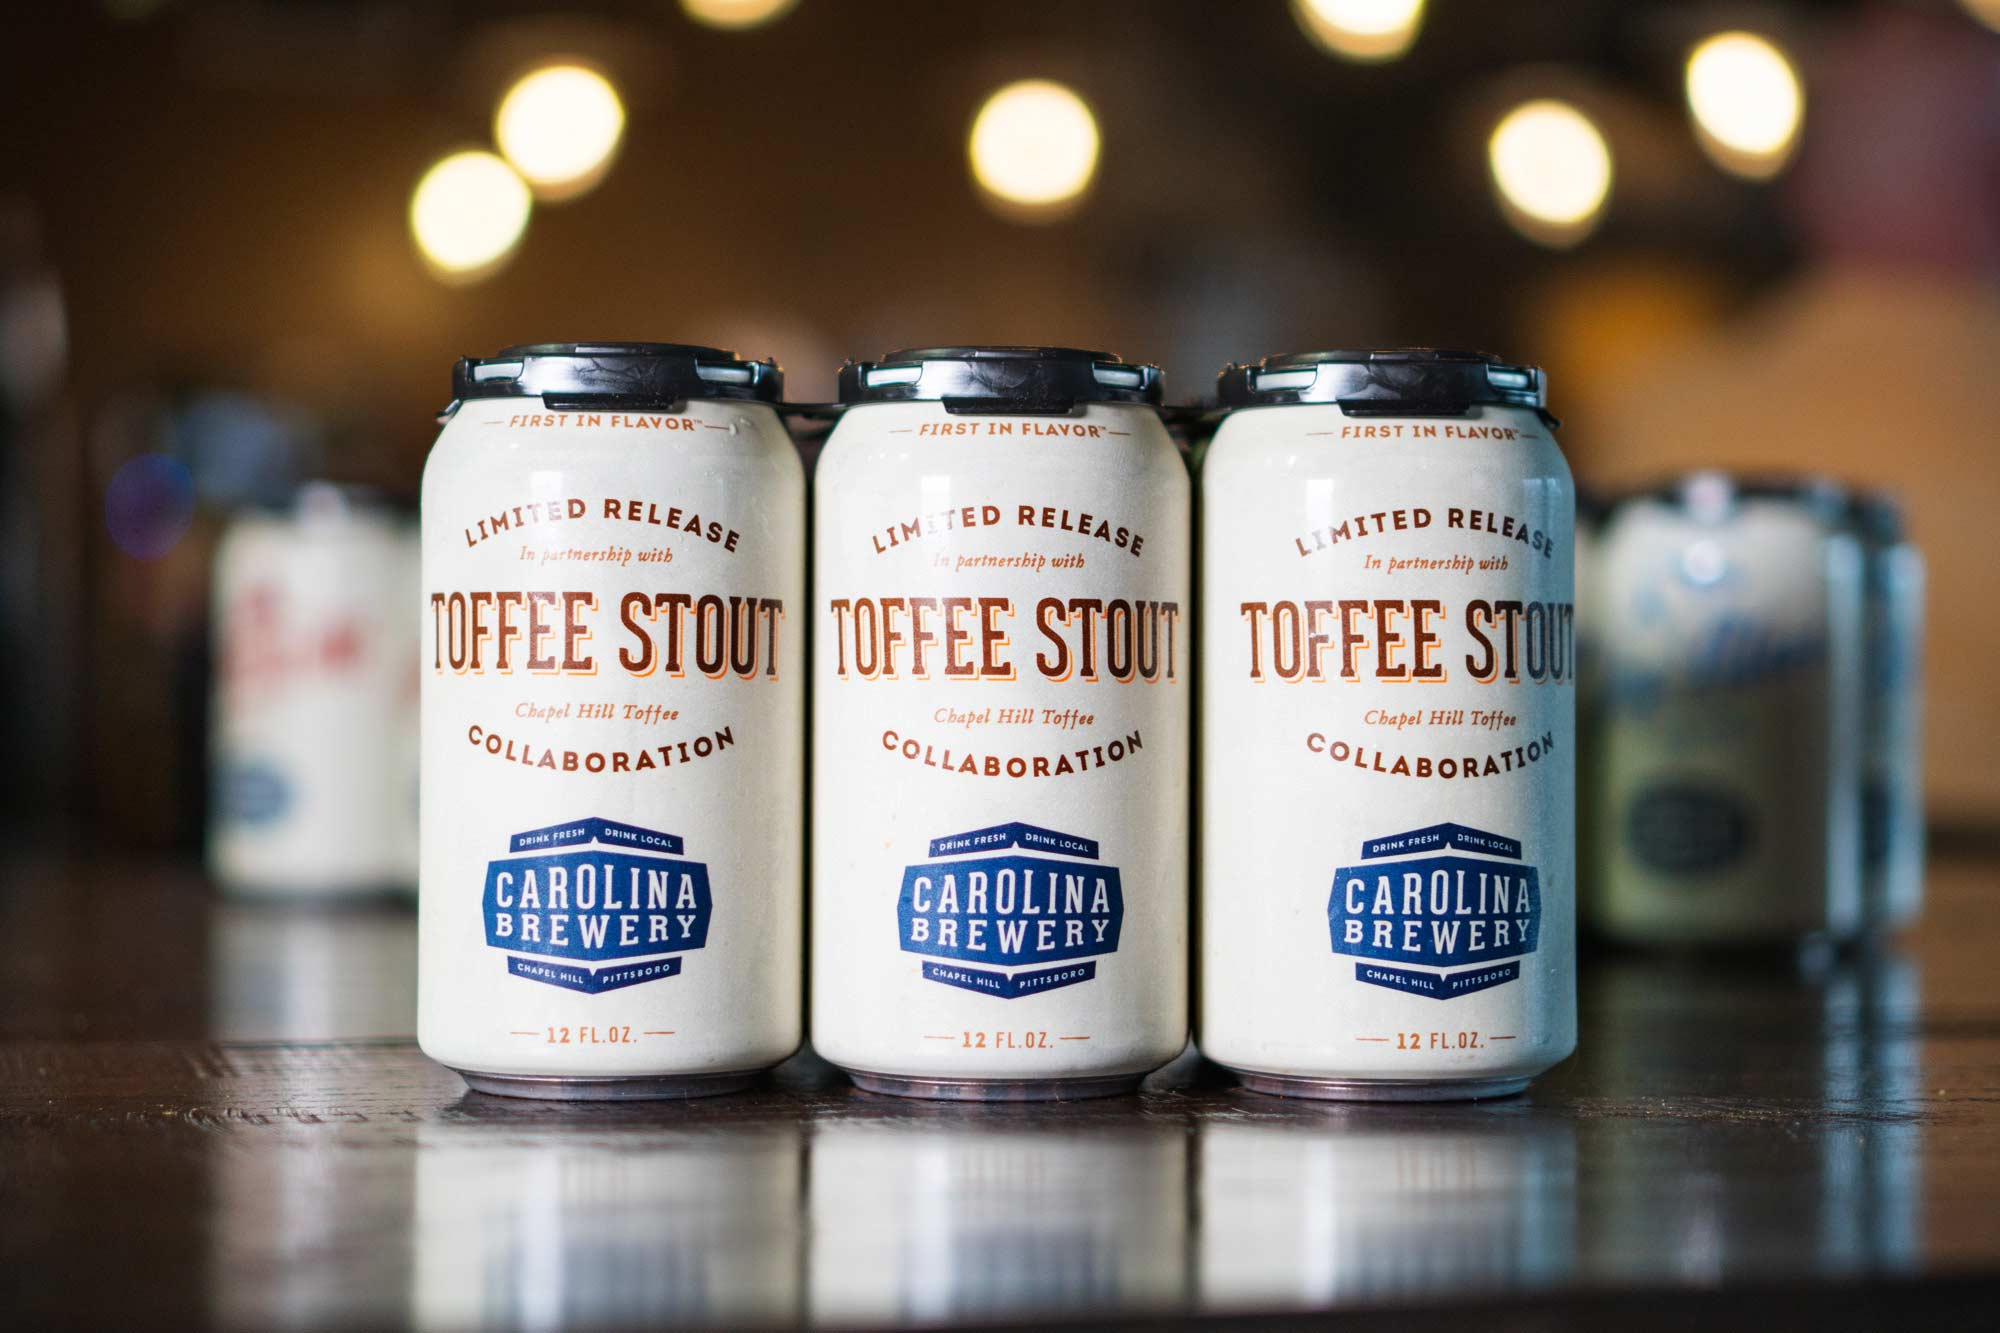 Craft-Beer-Branding_Carolina-Brewery-Toffee-Stout-Can.jpg